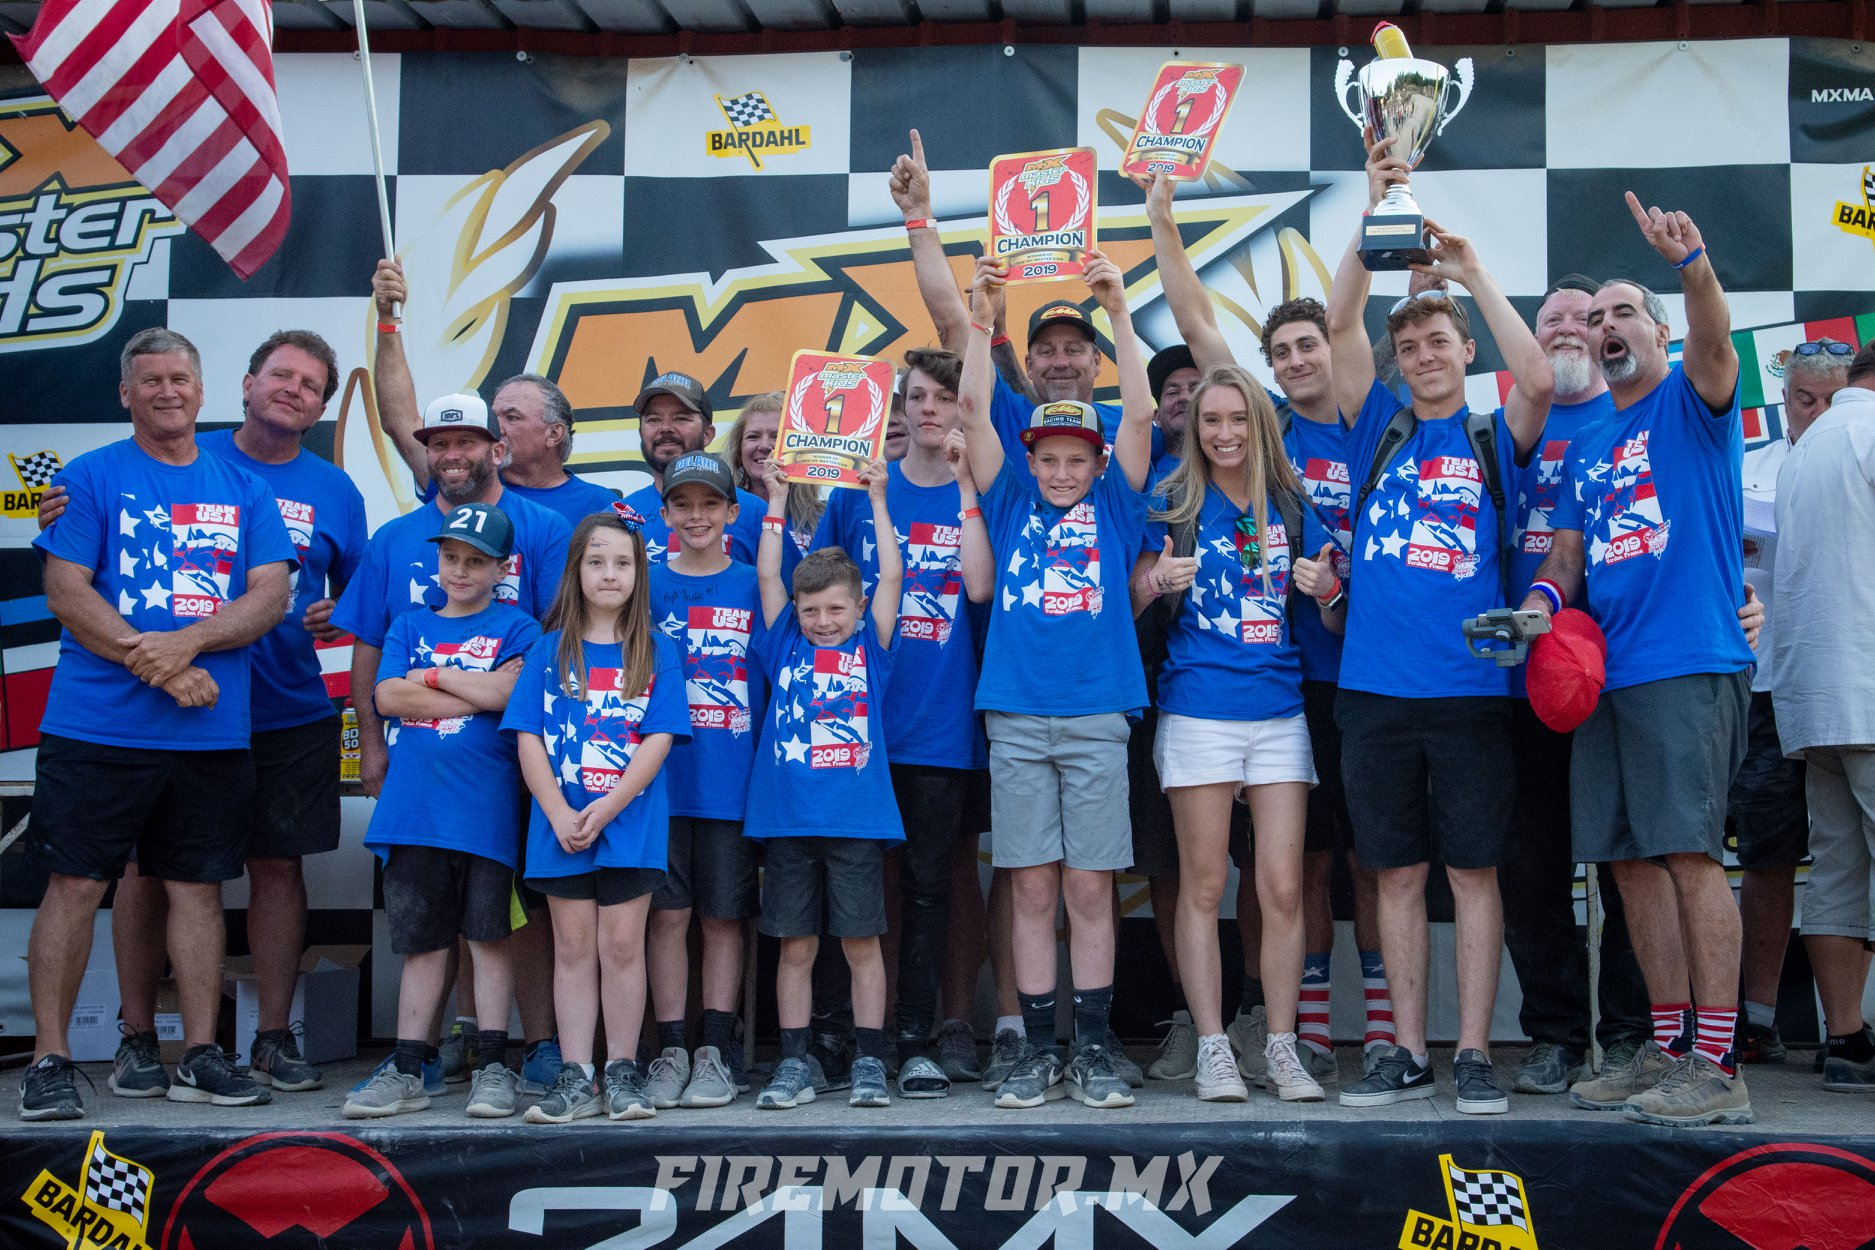 mx master kids team usa gagne 2019